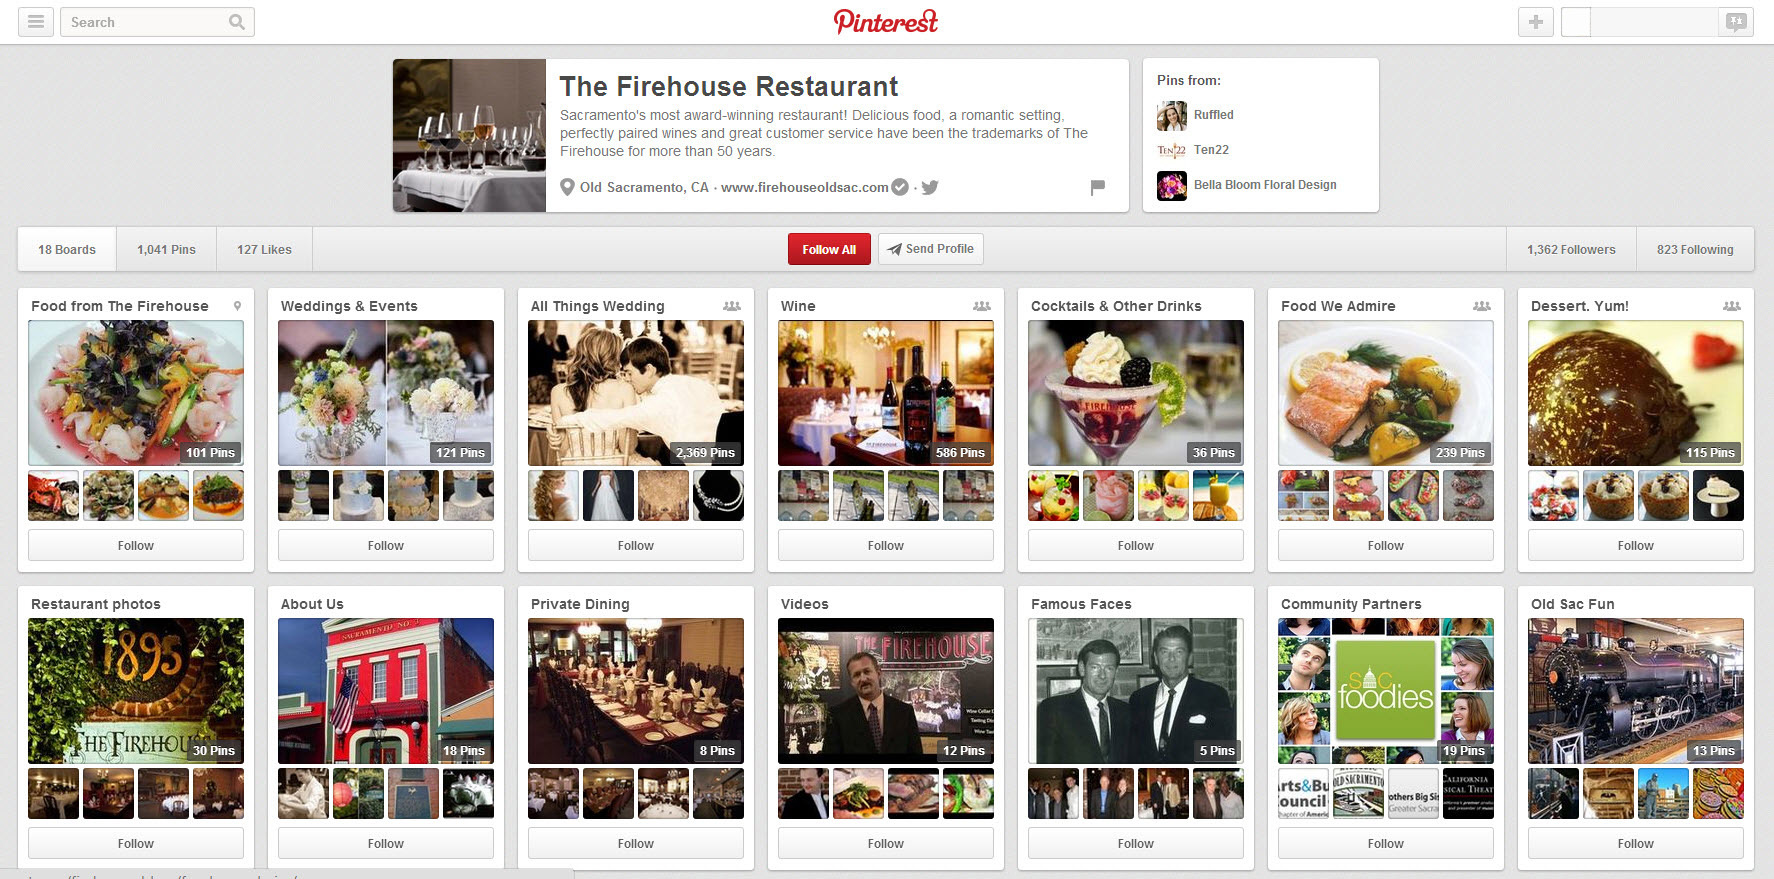 Pinterest as a search engine for local restaurants